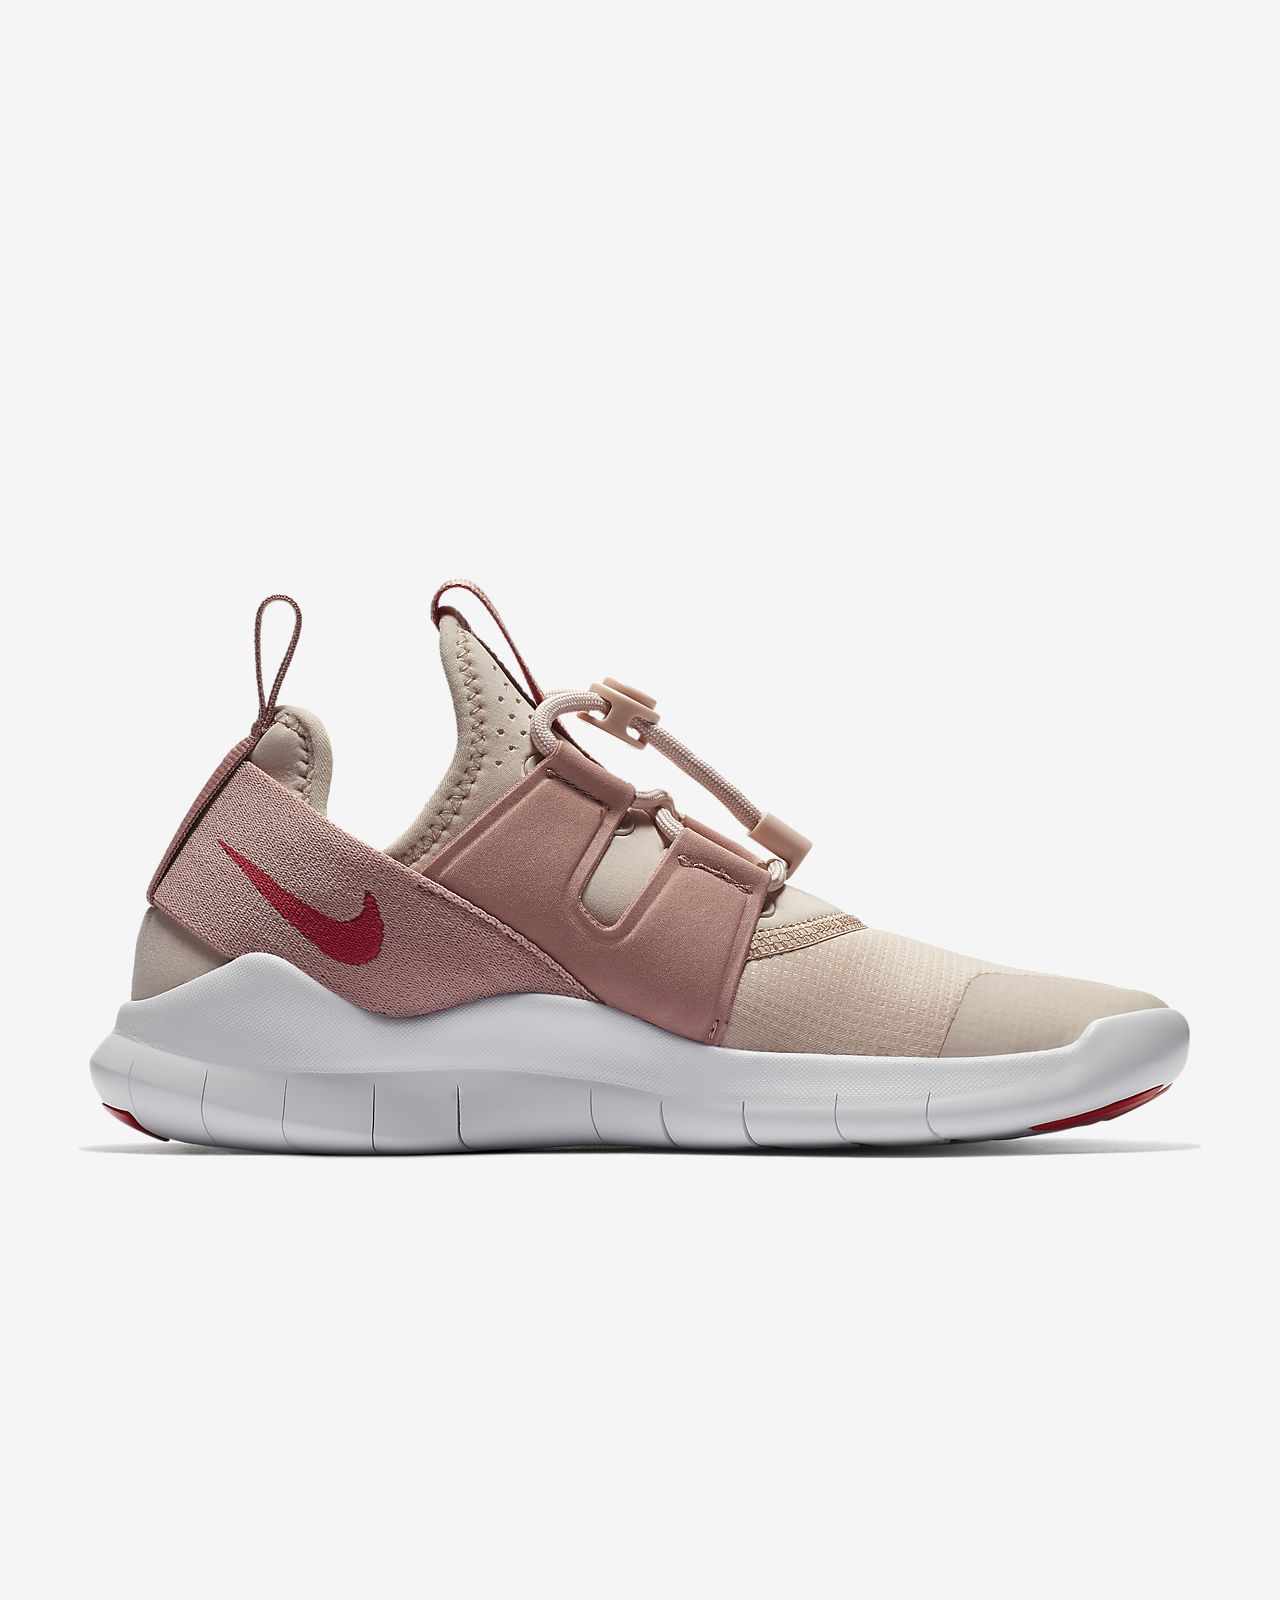 Details about Nike Free RN CMTR 2018 Running Shoes AA1621 200 Particle Beige, Pink